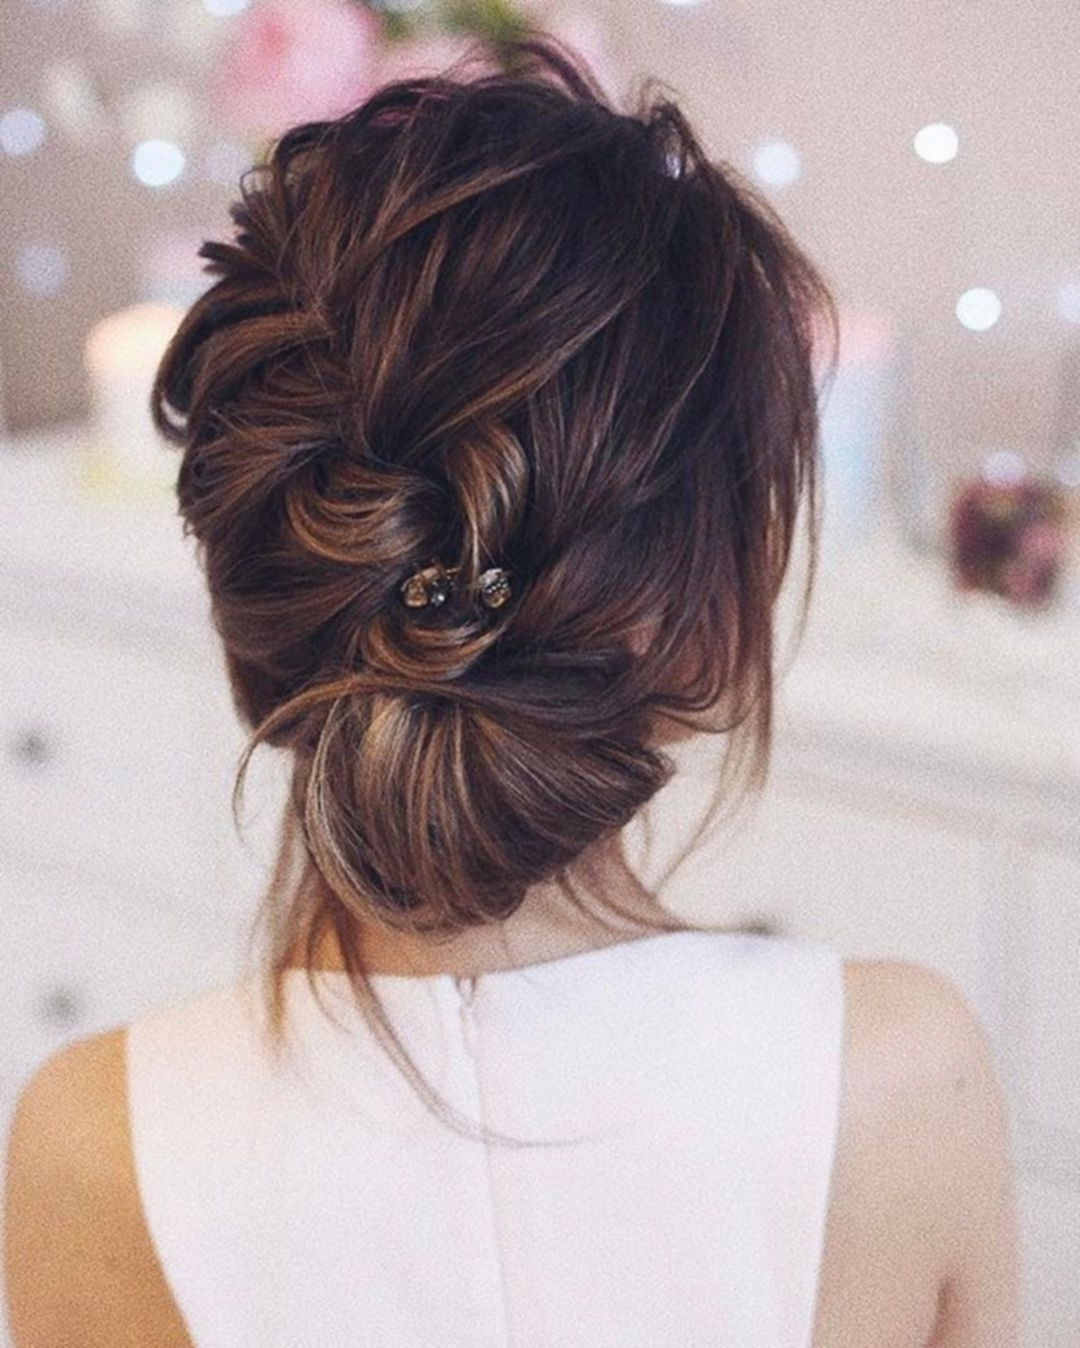 60+ Wonderful Bridesmaid Updo Hairstyles | Bridesmaid Updo With Regard To Long Hair Updo Hairstyles For Over (View 11 of 15)